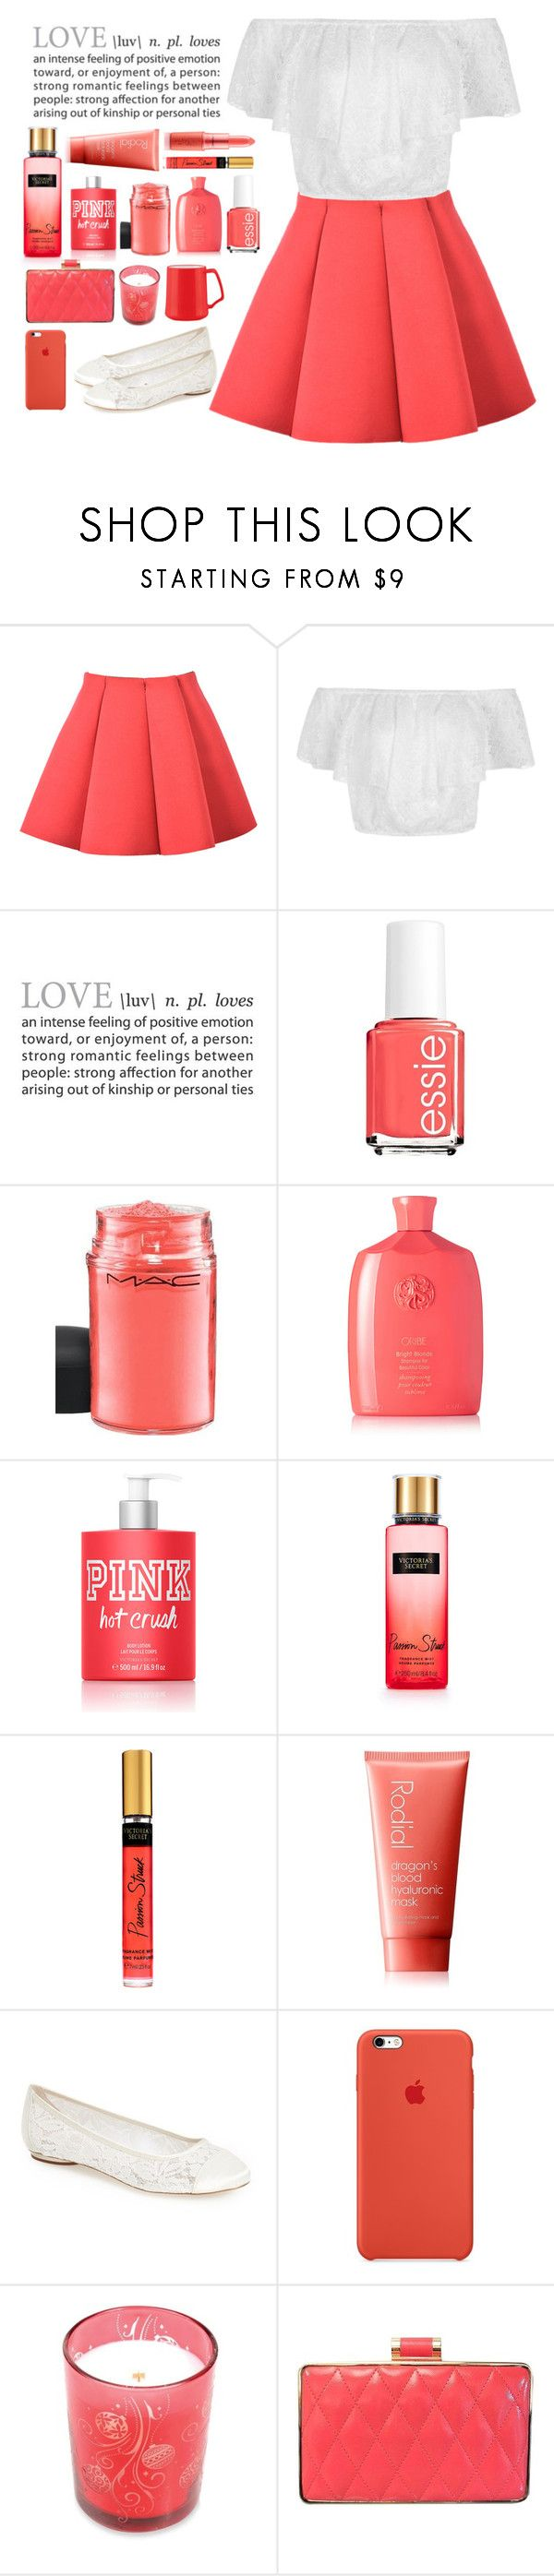 """""""Hot Love"""" by pumpkinpie432 ❤ liked on Polyvore featuring Essie, MAC Cosmetics, Oribe, Victoria's Secret, Rodial, Pink Paradox London, WoodWick, Sondra Roberts and Dansk"""